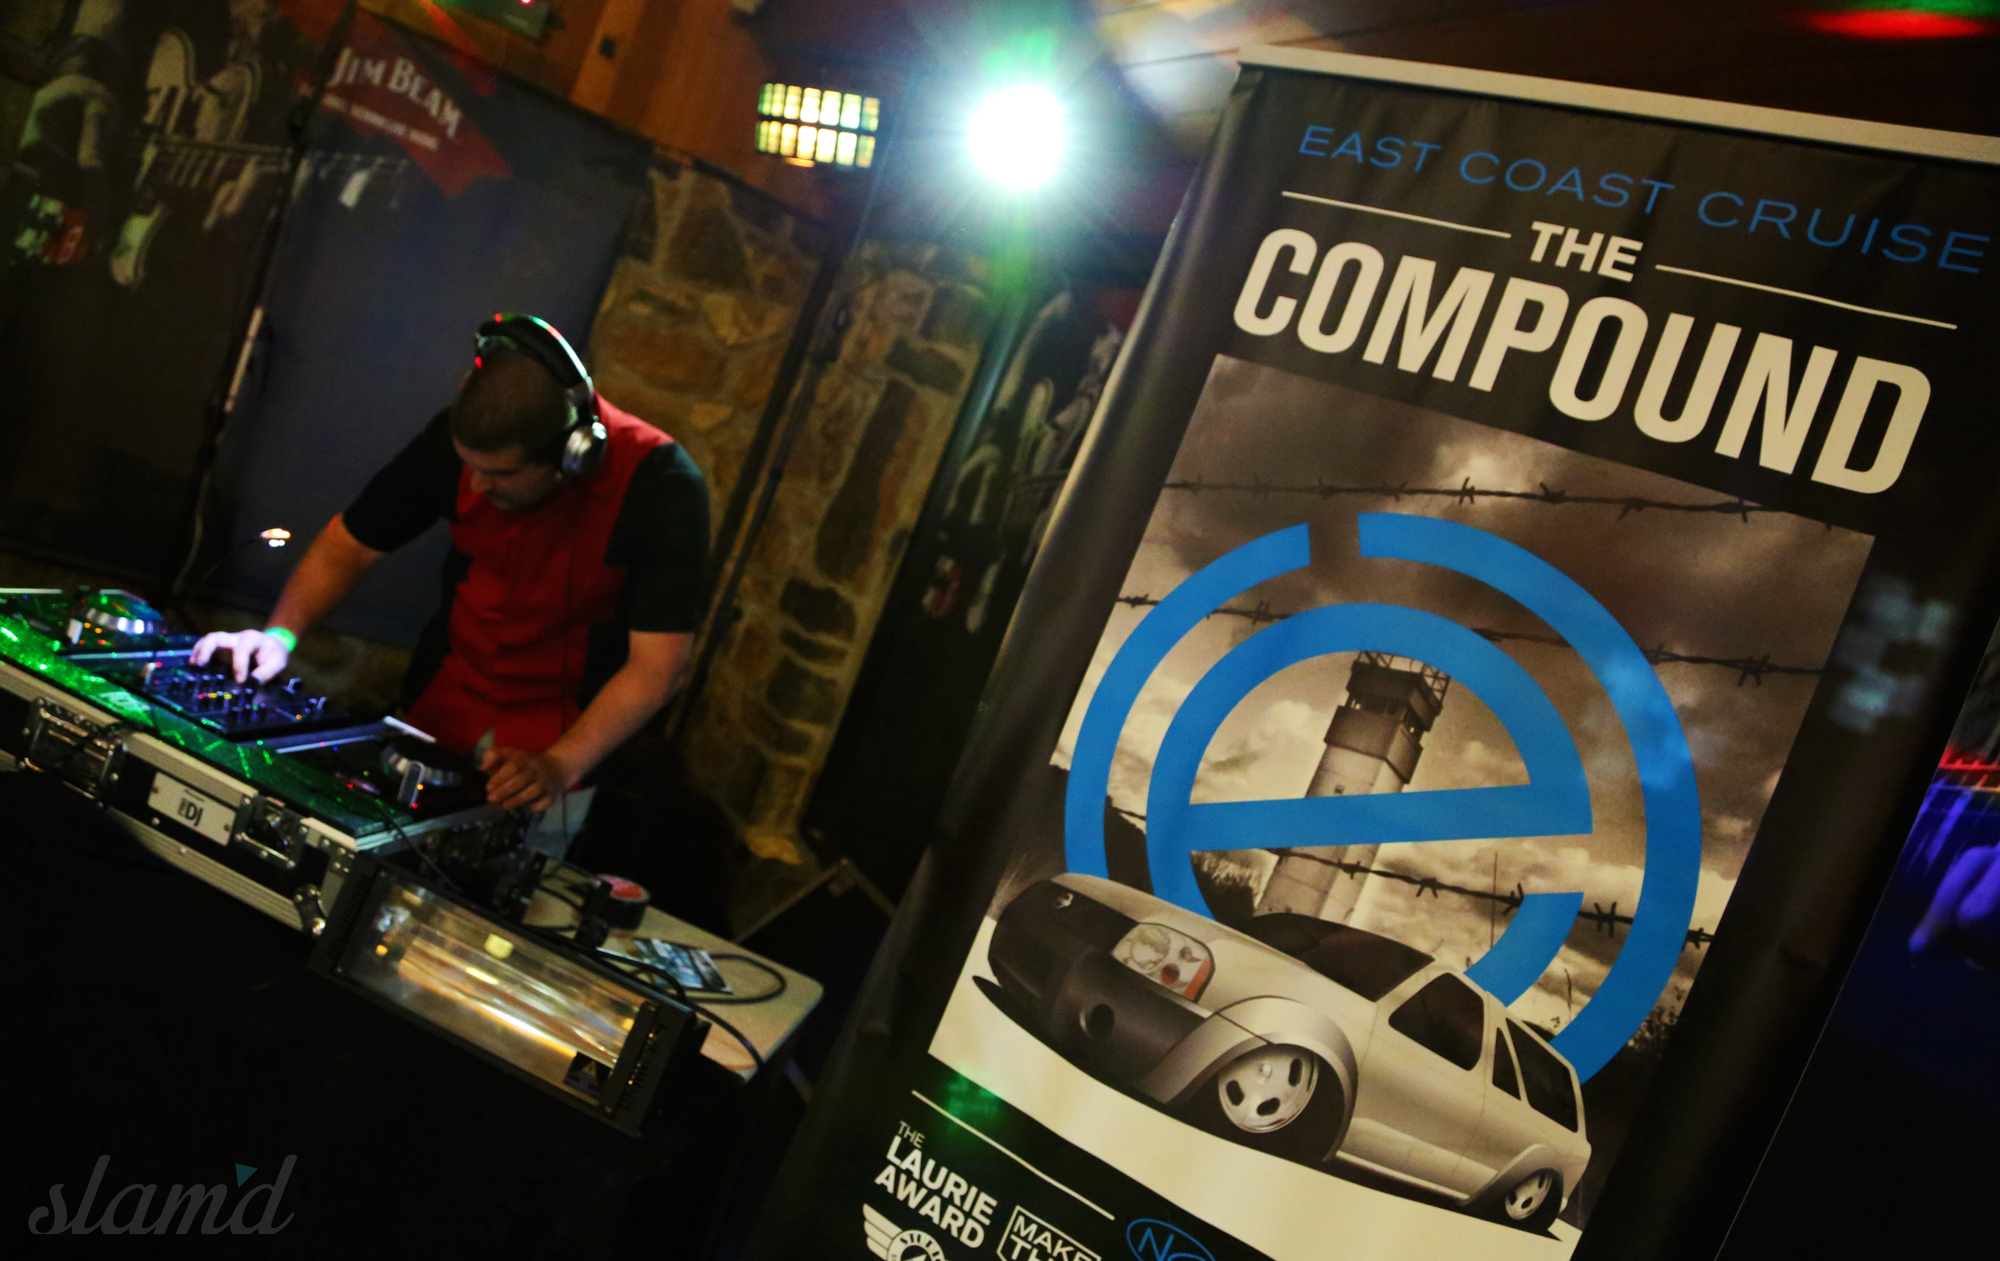 SLAMD-Compound-13